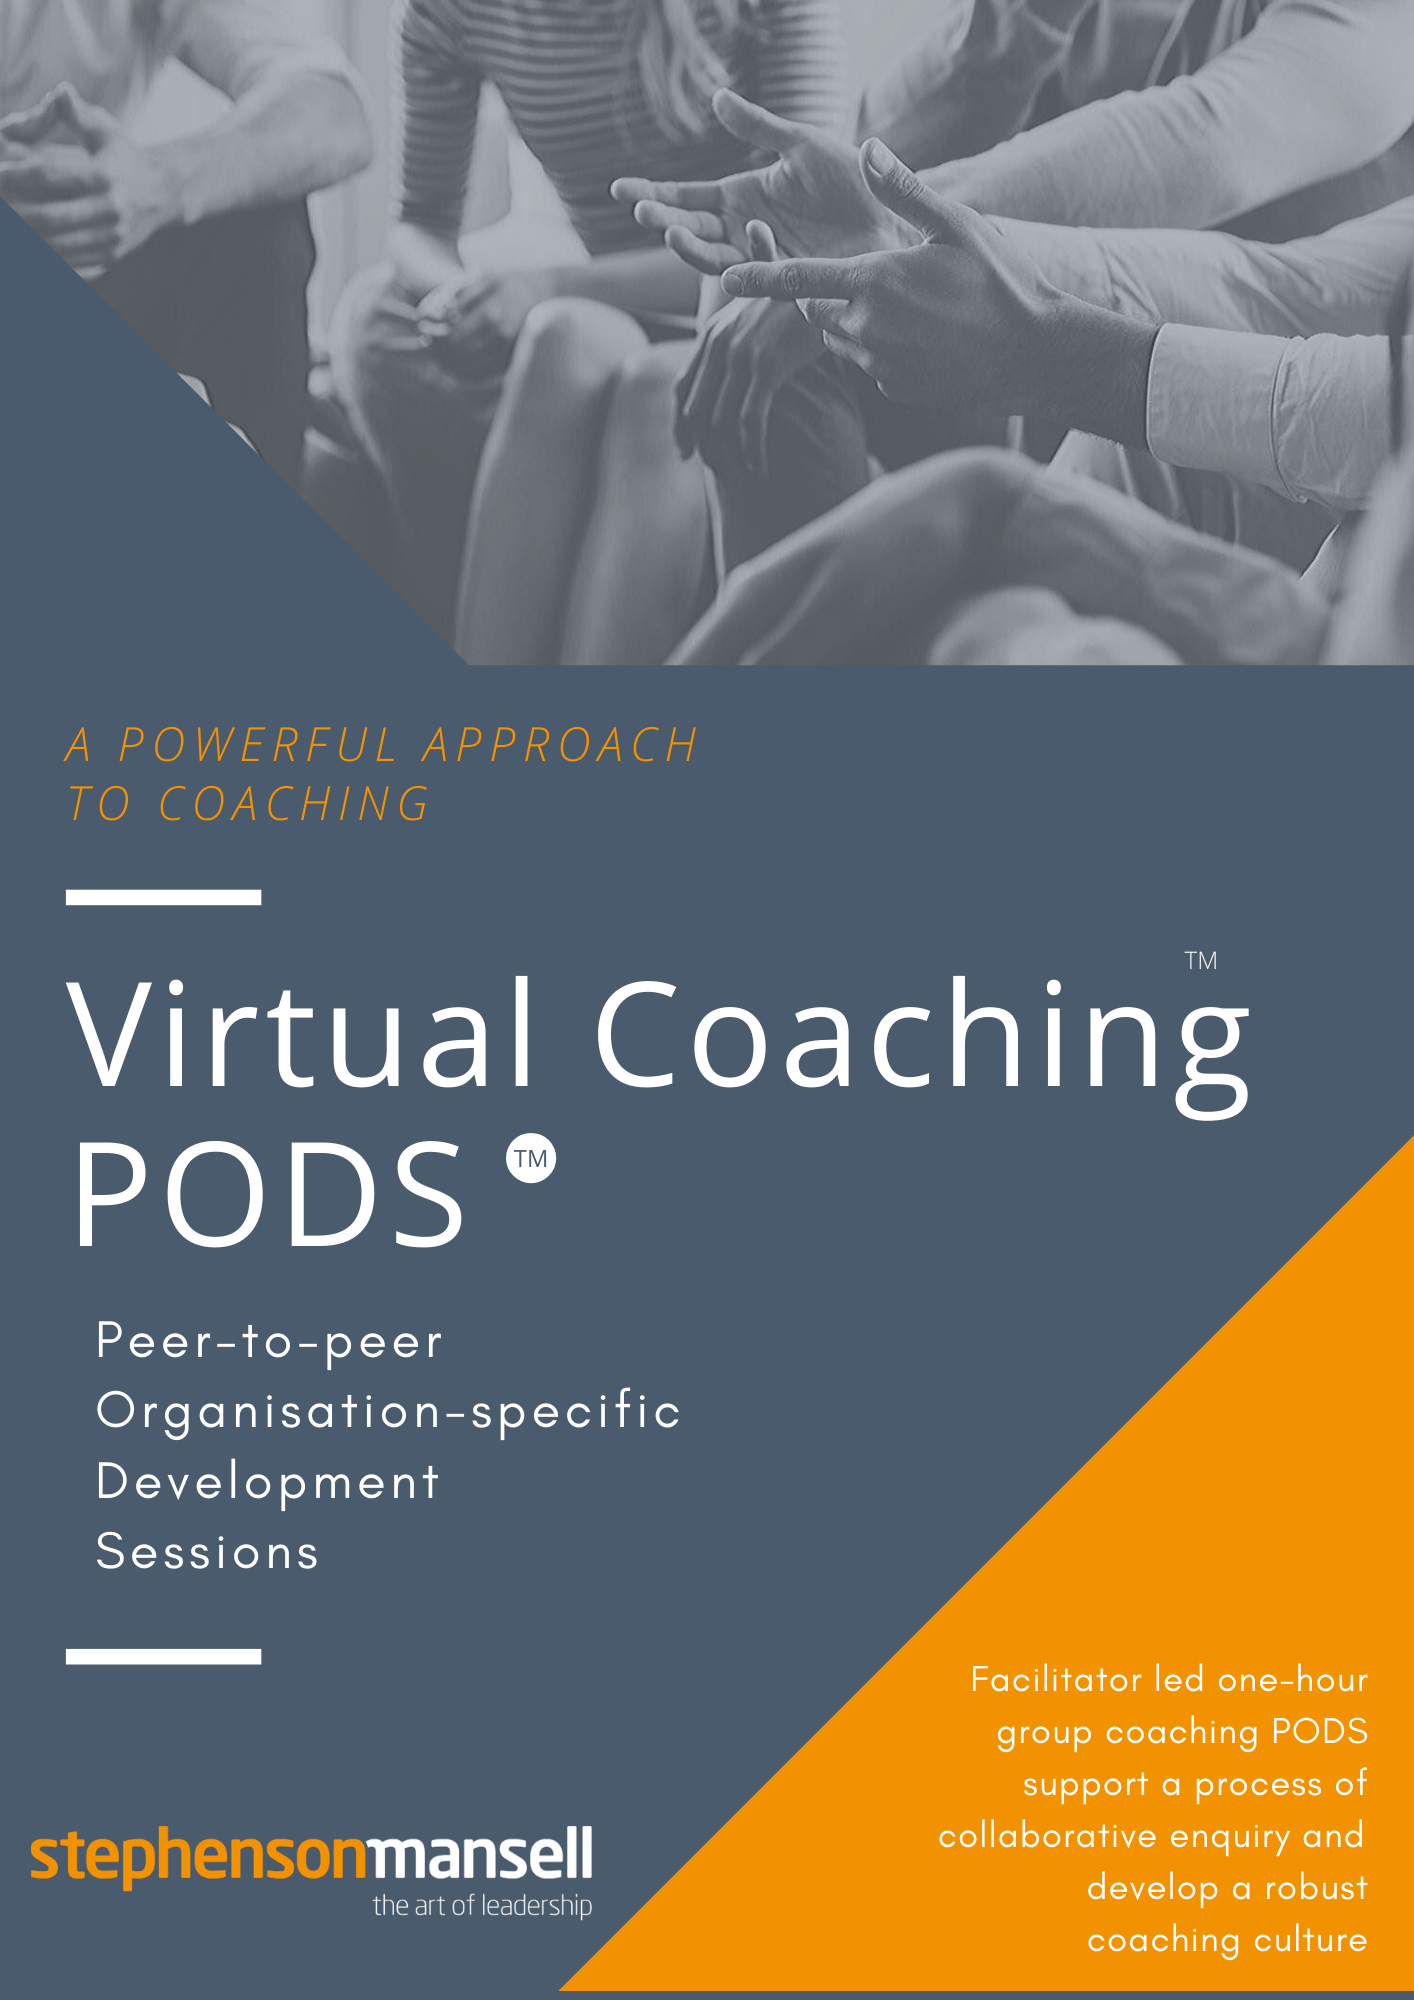 Virtual Coaching PODS